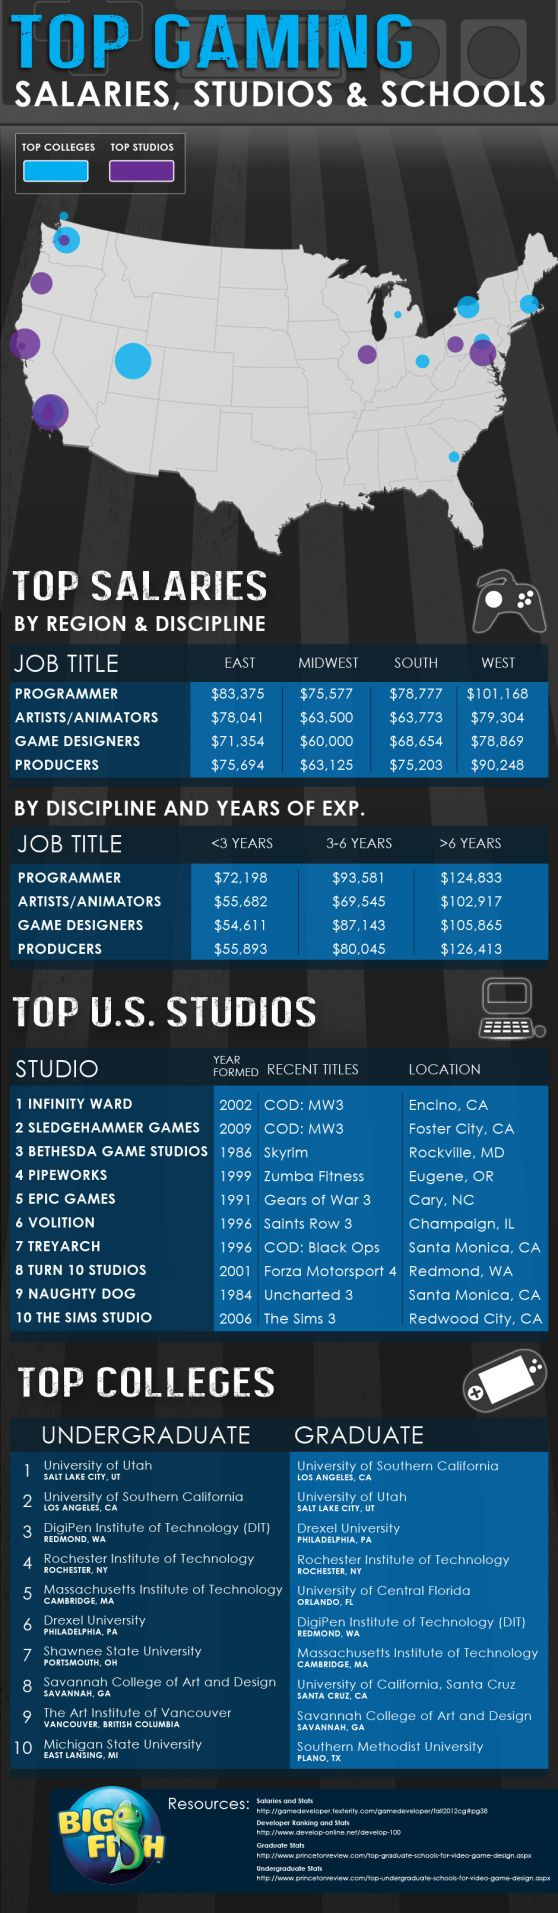 Go #RIT! Top colleges and highest salaries in gaming industry #infographic